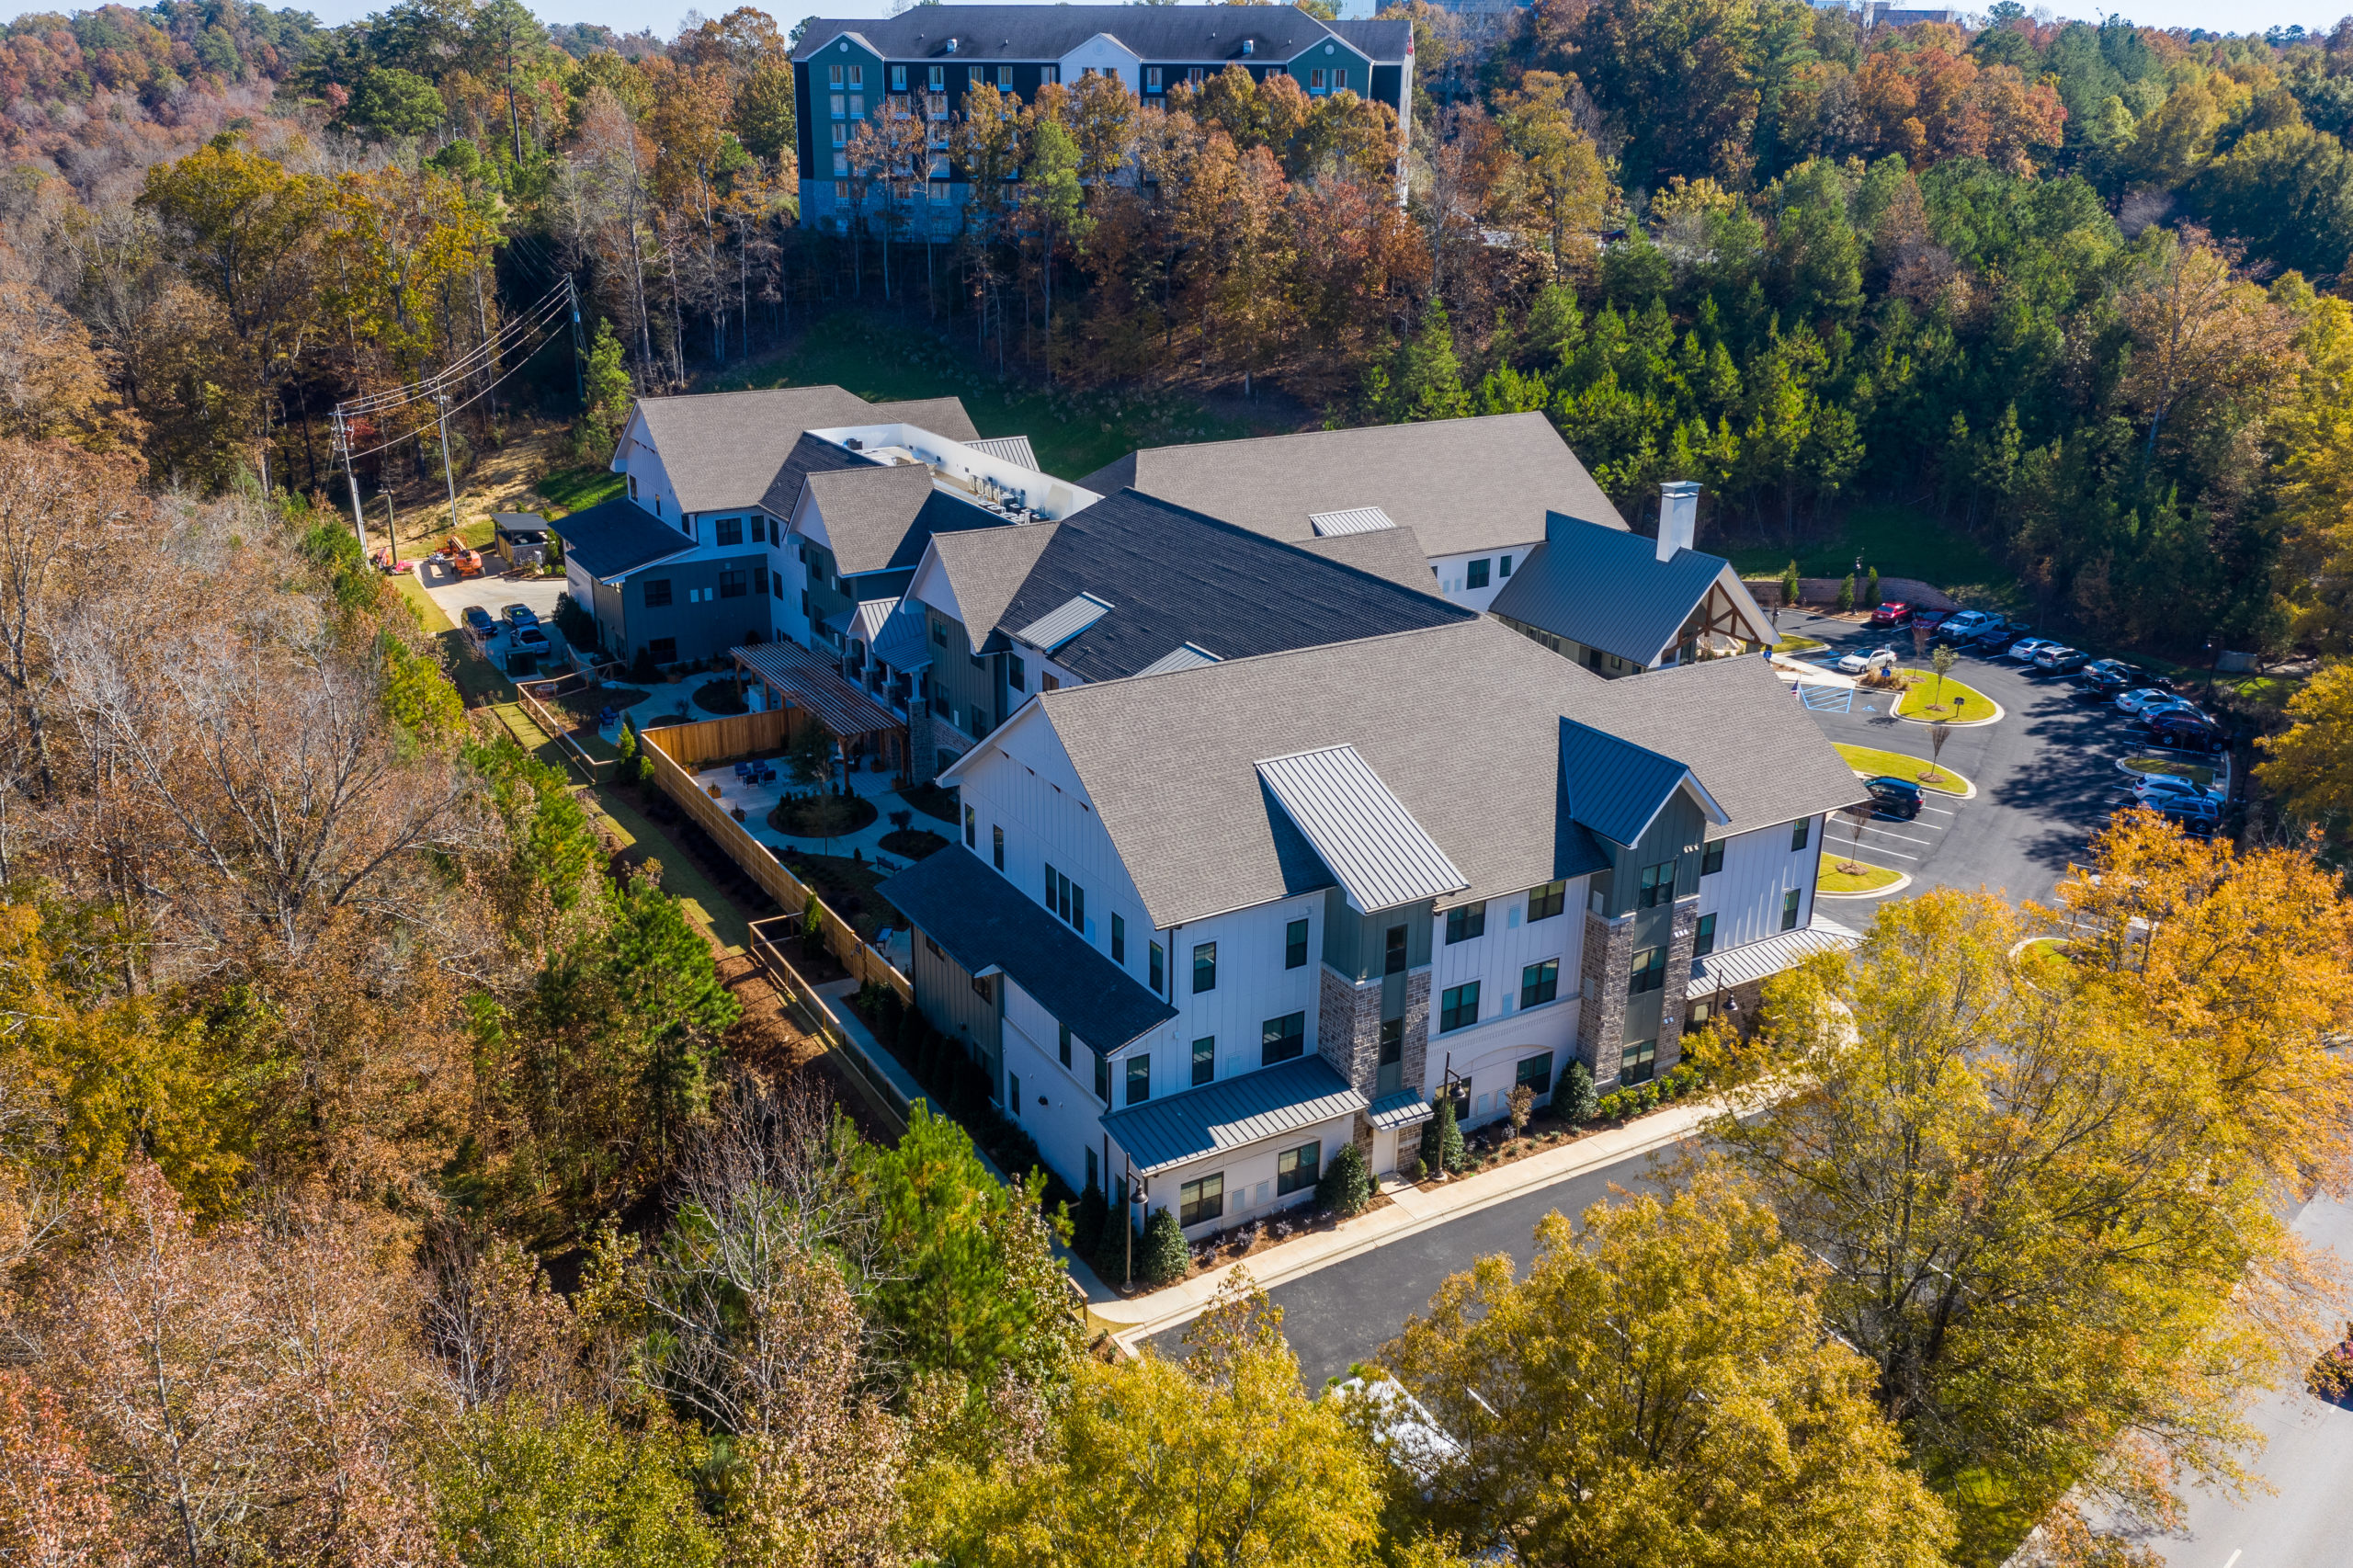 Aerial view of Longleaf community looking at left side of community with fenced memory care patios in view and front entrance to the right and fall trees surrounding community